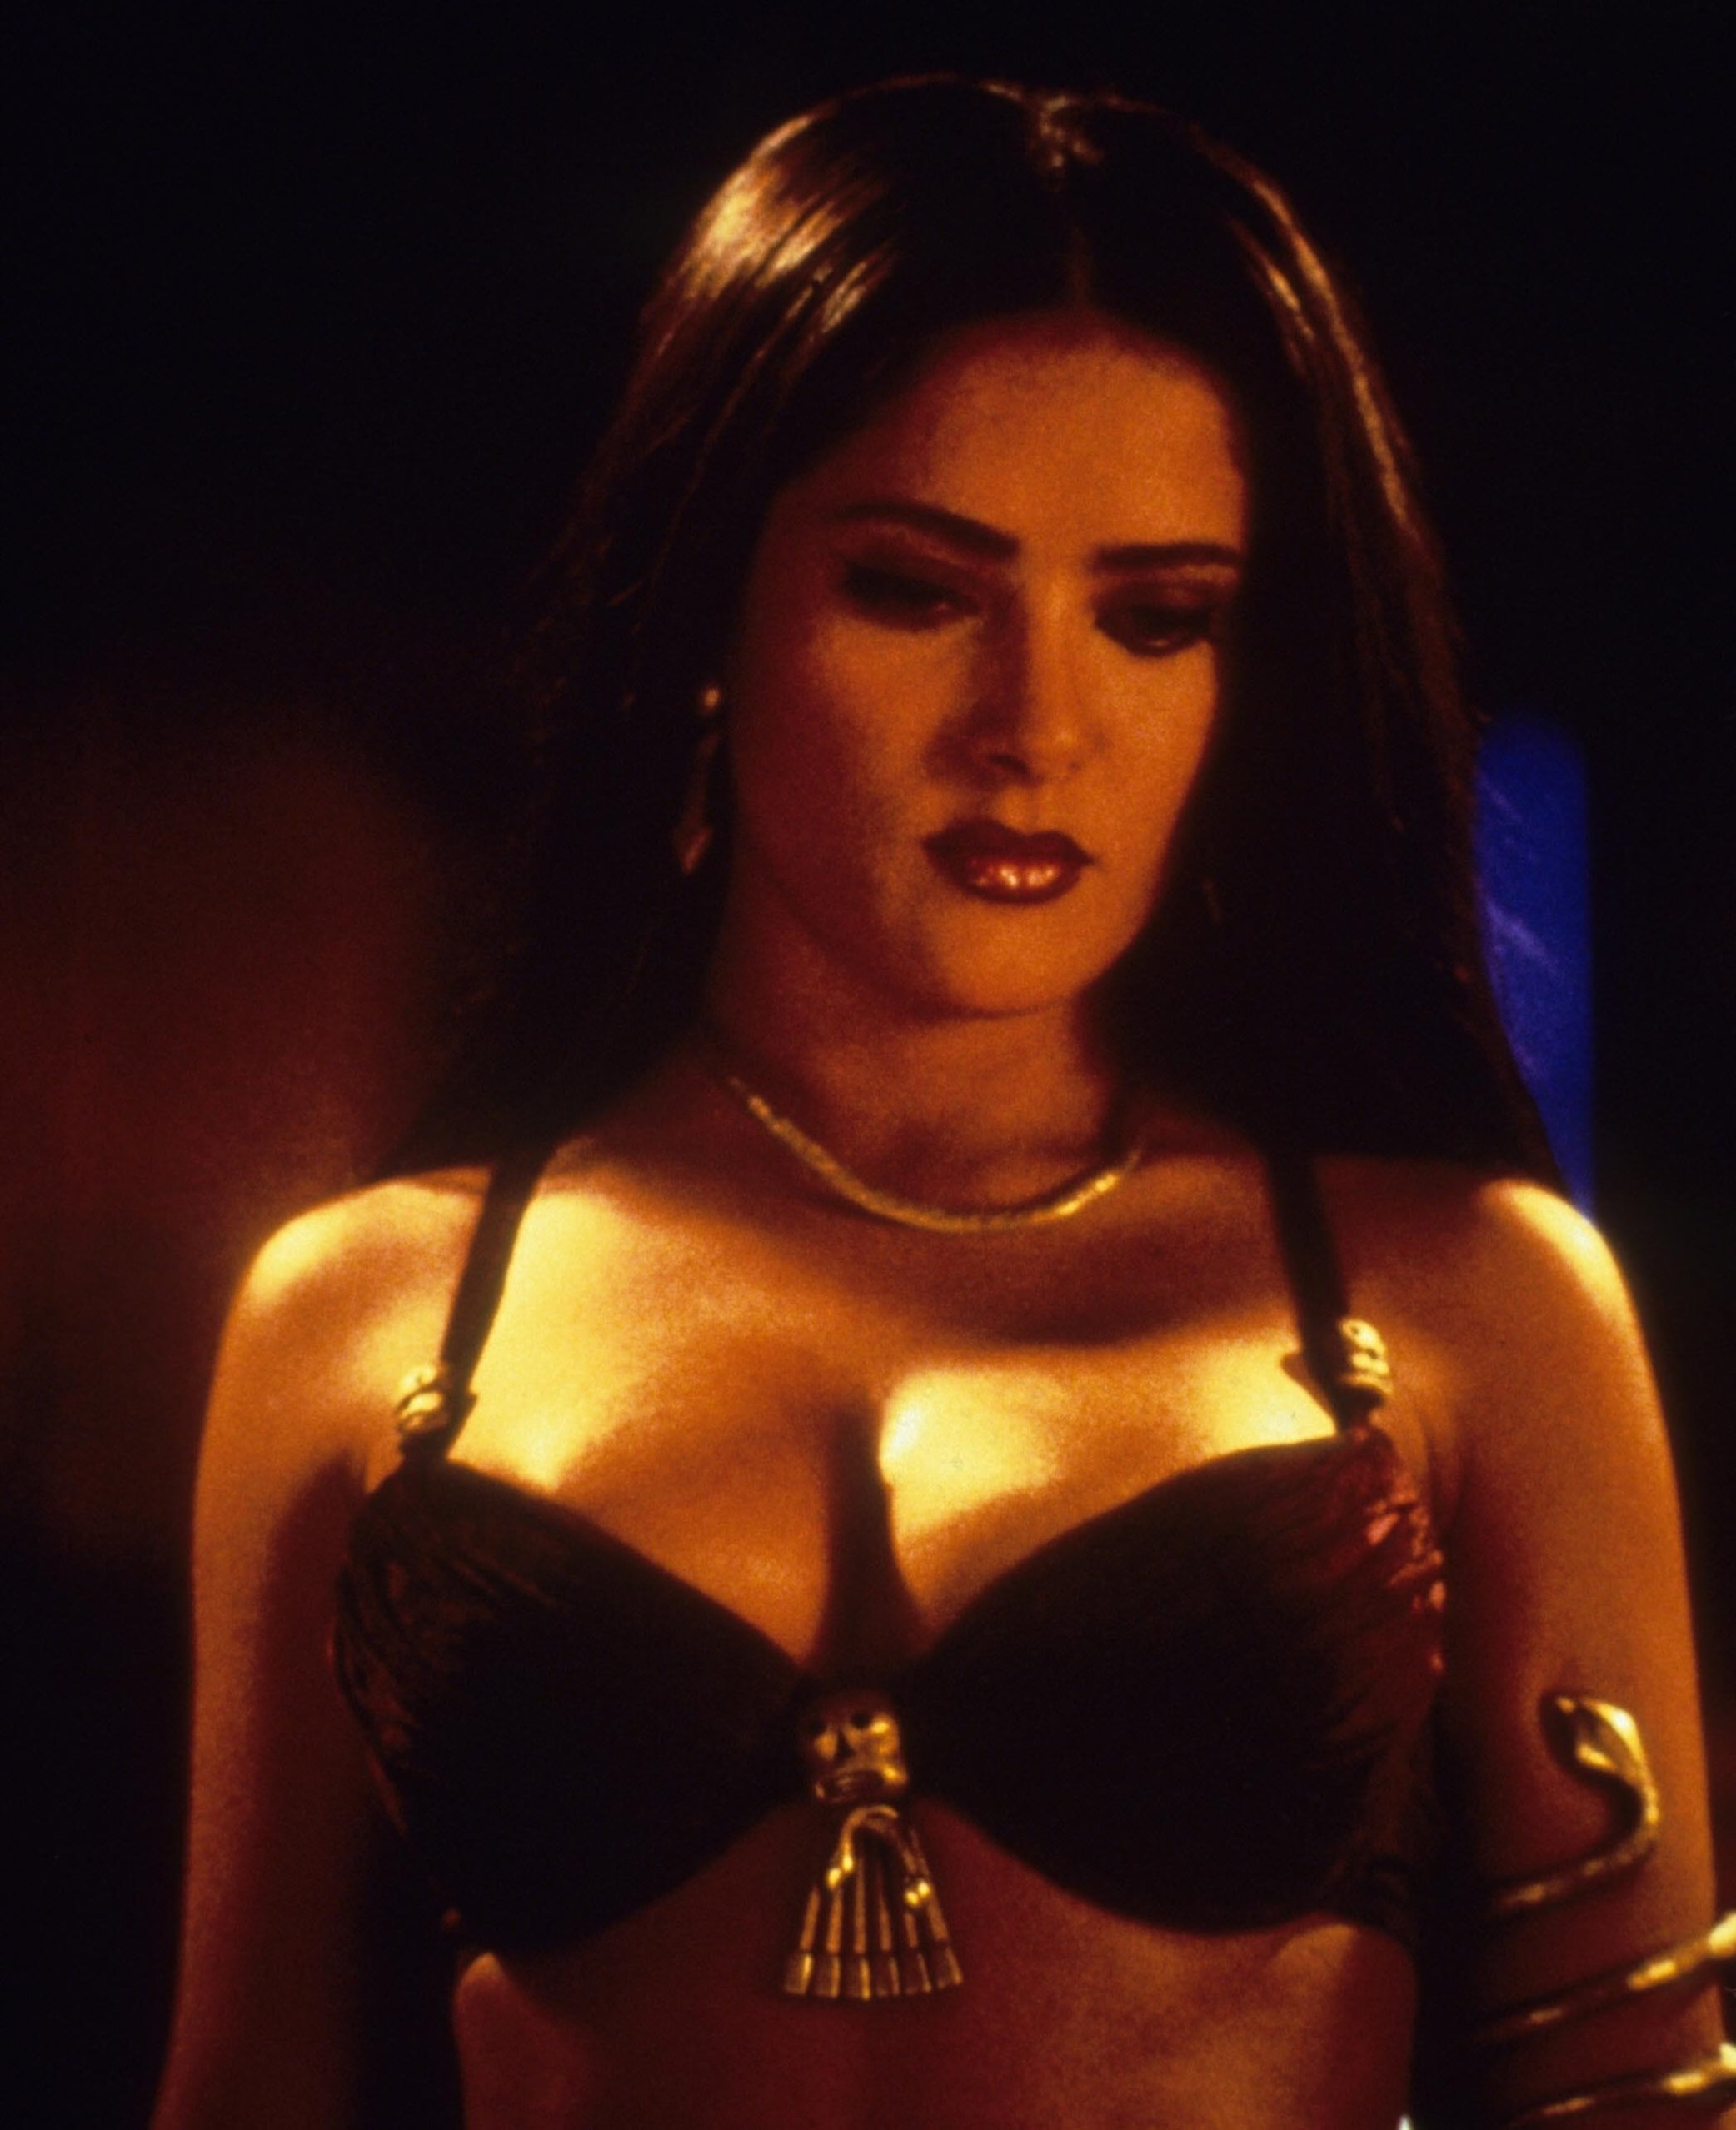 Salma Hayek flaunted her big boobs as a vampire queen in the 1996 American action horror film From Dusk till Dawn